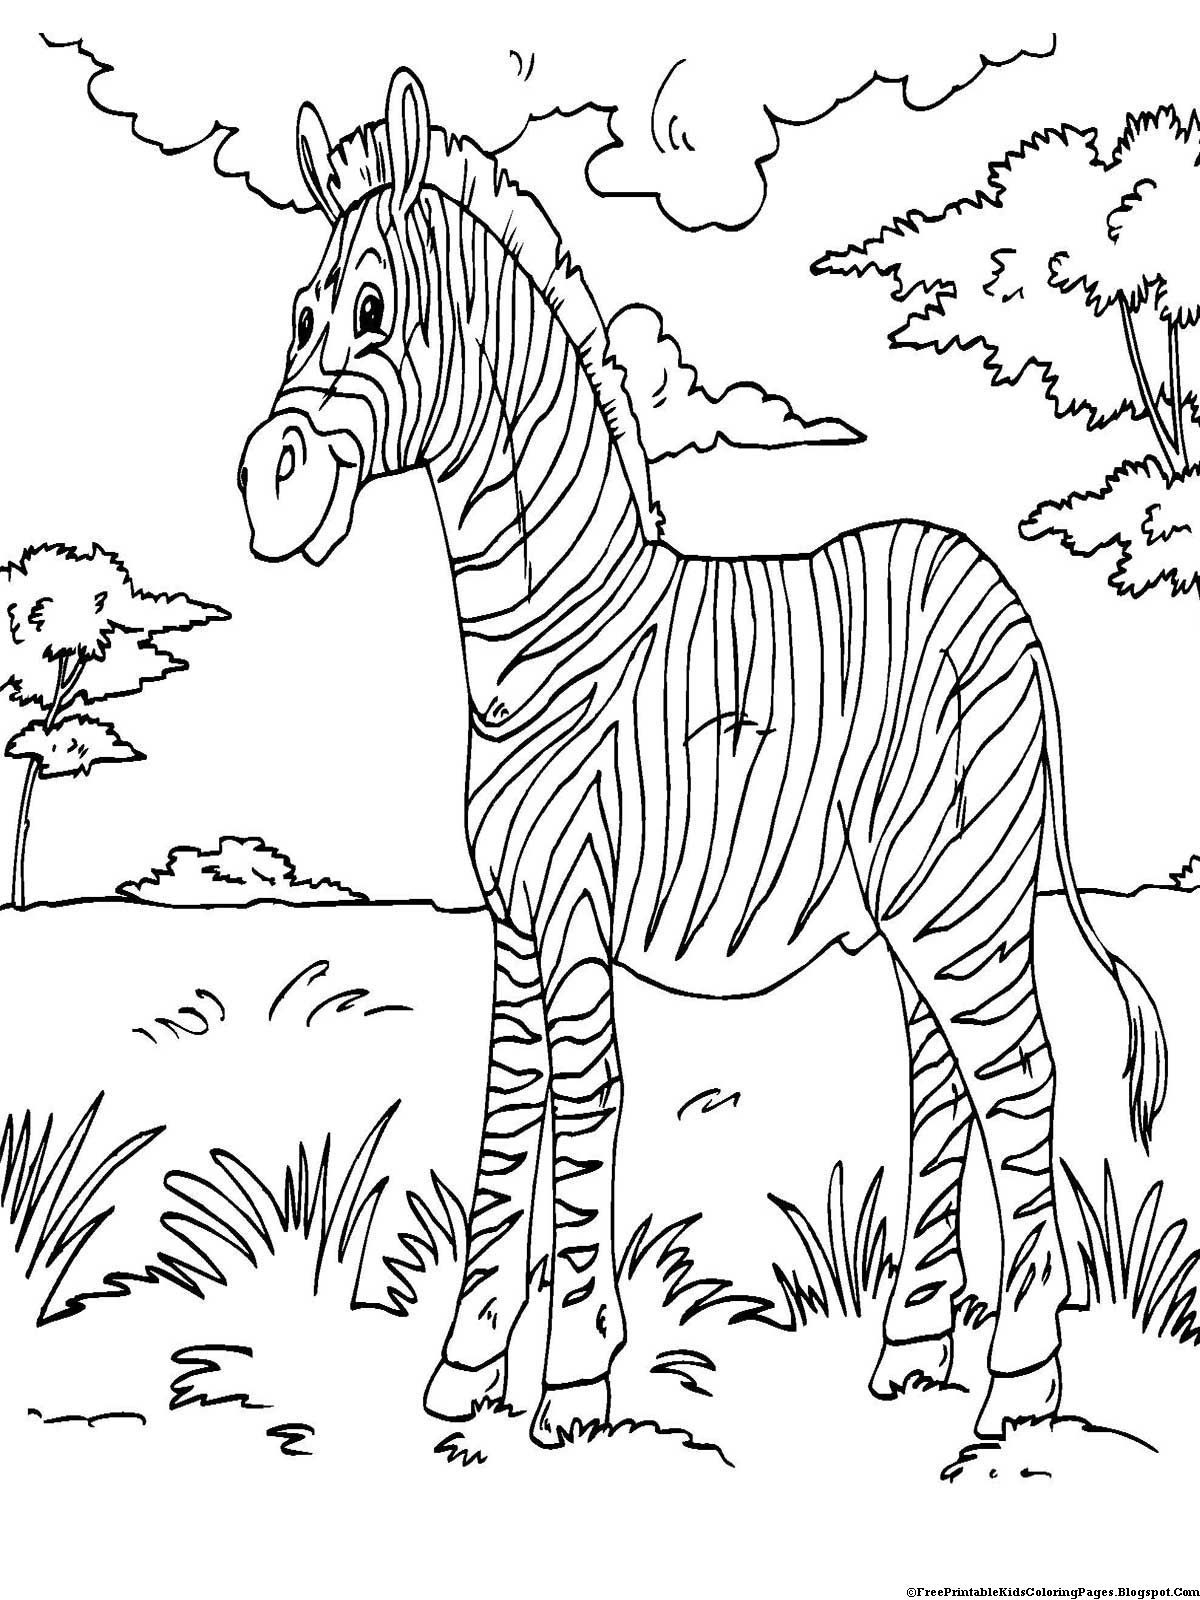 coloring templates for kids free printable belle coloring pages for kids for kids coloring templates